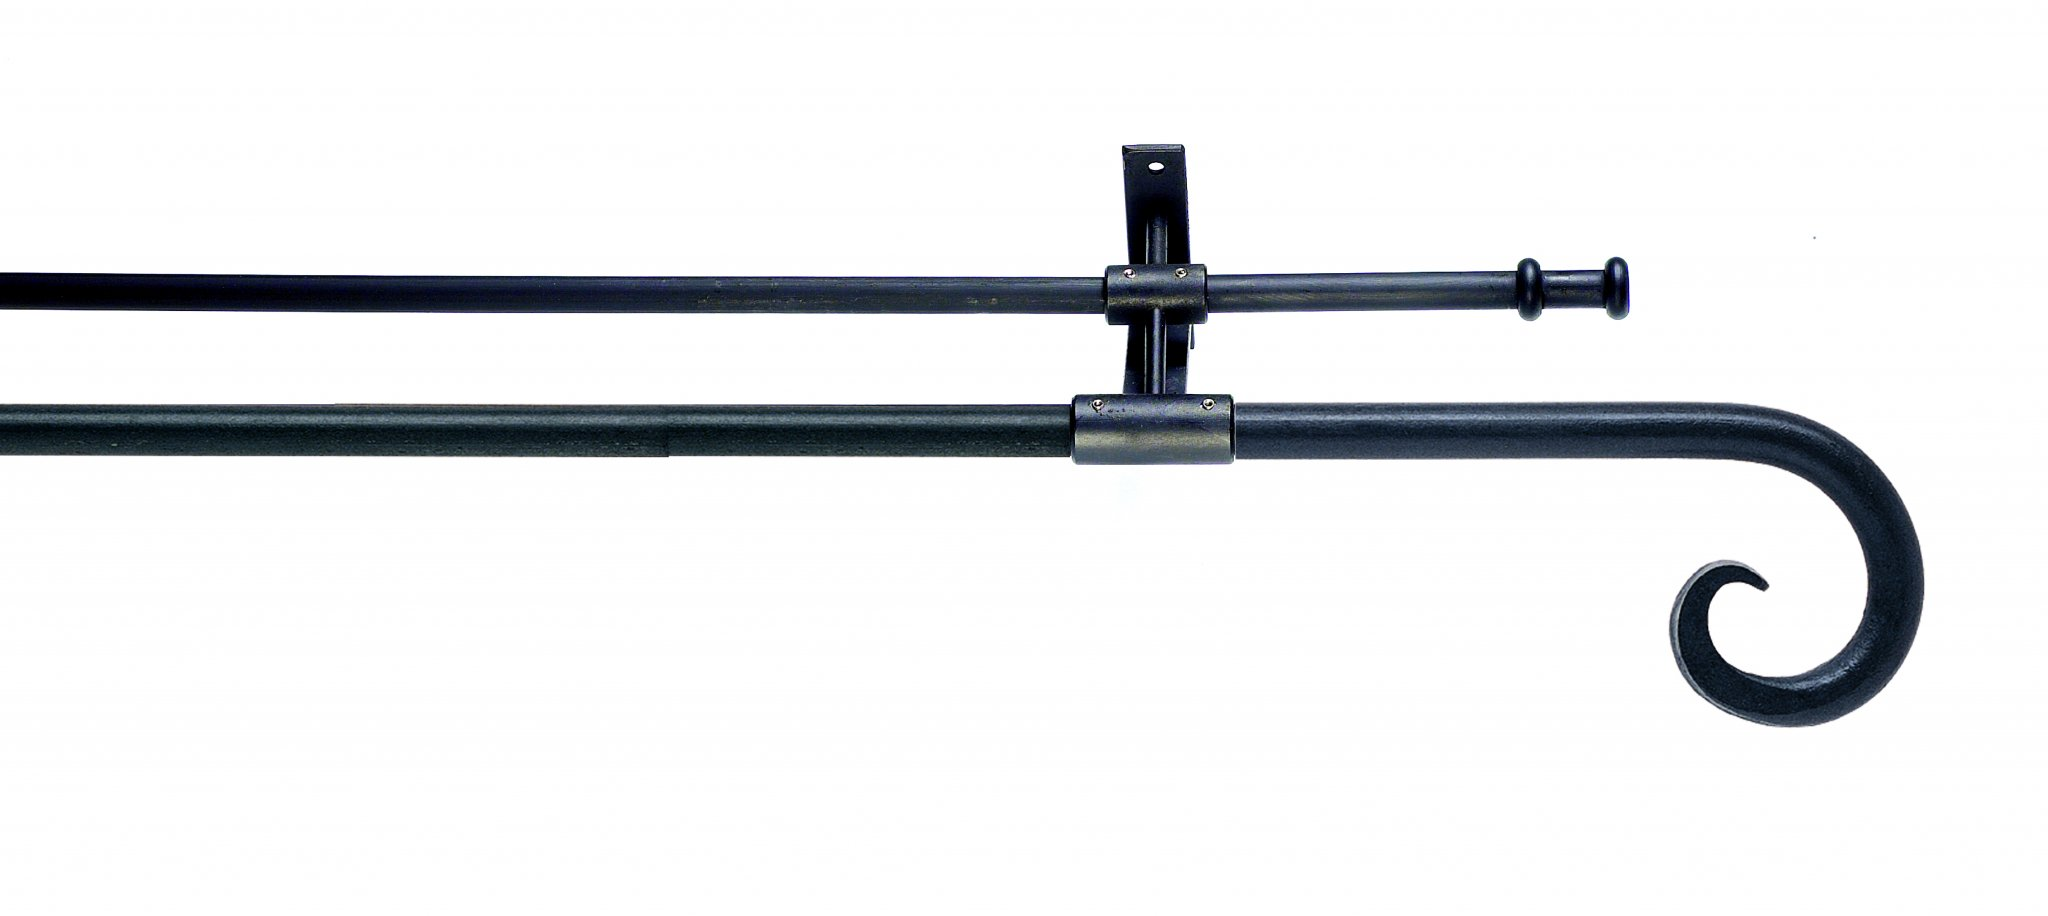 Artitsan Wrought Iron Double Curtain Pole 12mm 16mm Curl